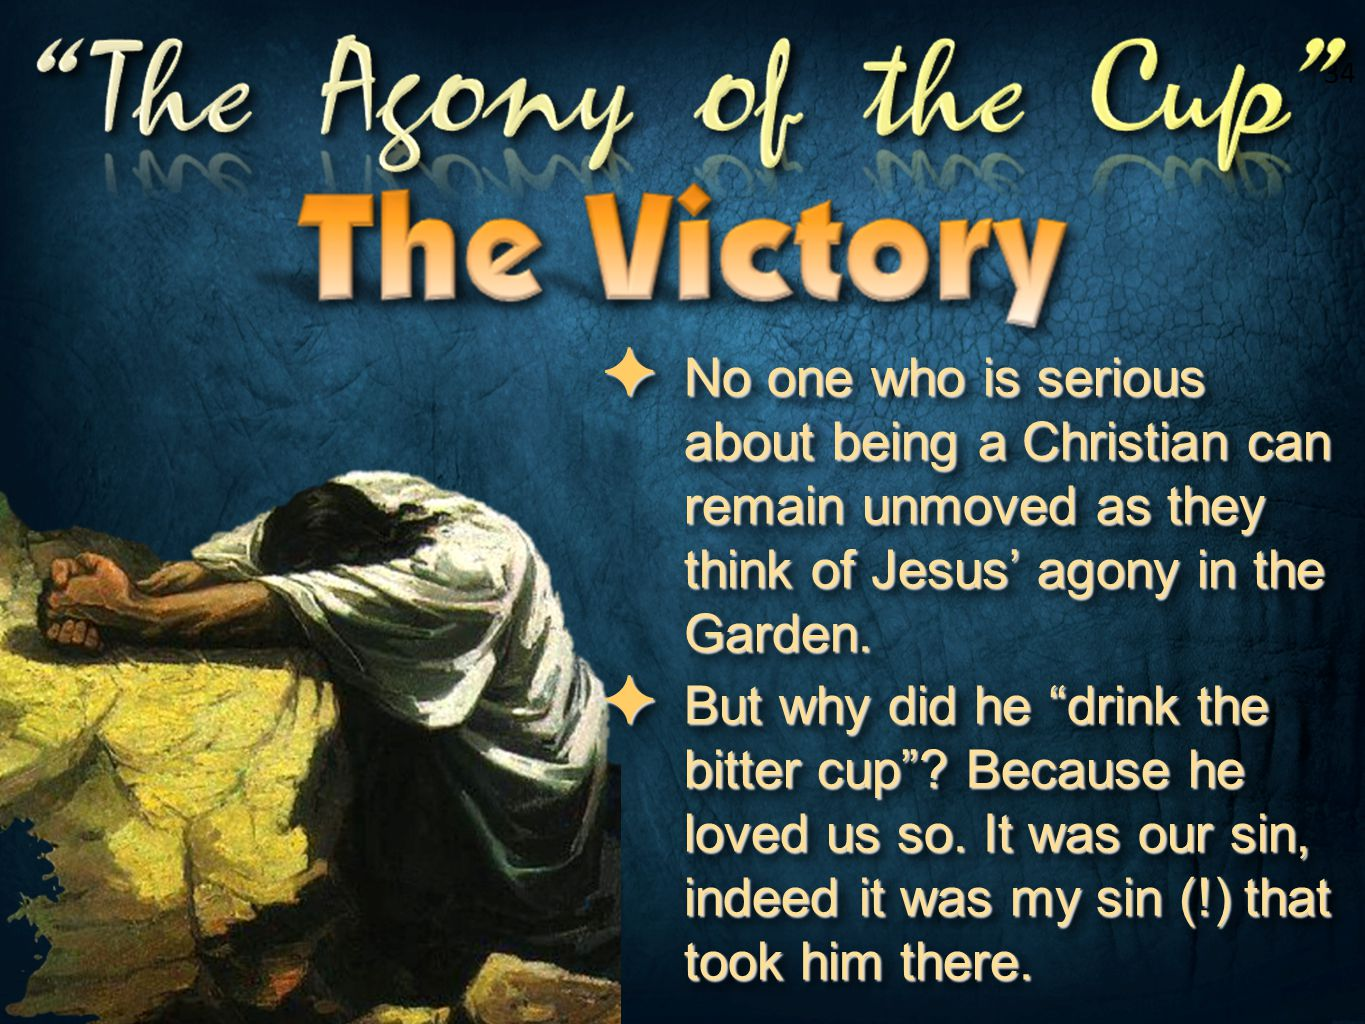 34 No one who is serious about being a Christian can remain unmoved as they think of Jesus' agony in the Garden.